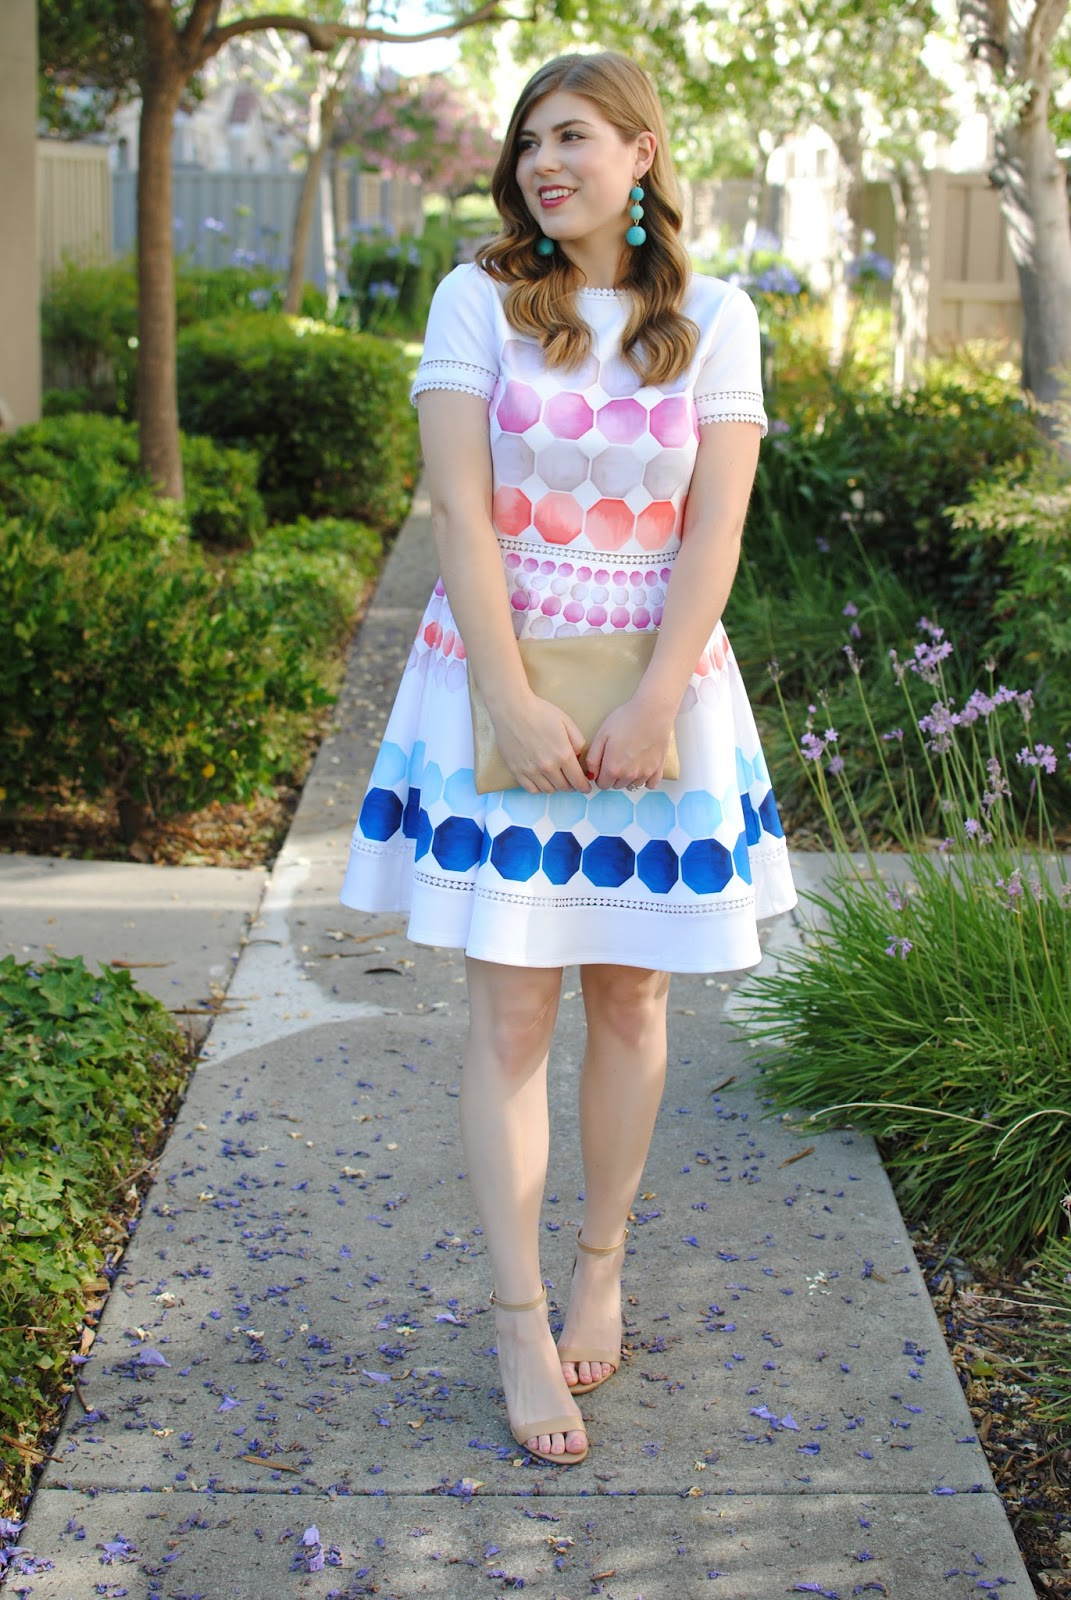 catherine-day-of-my-inner-fabulous-in-ted-baker-dress-for-bridal-shower